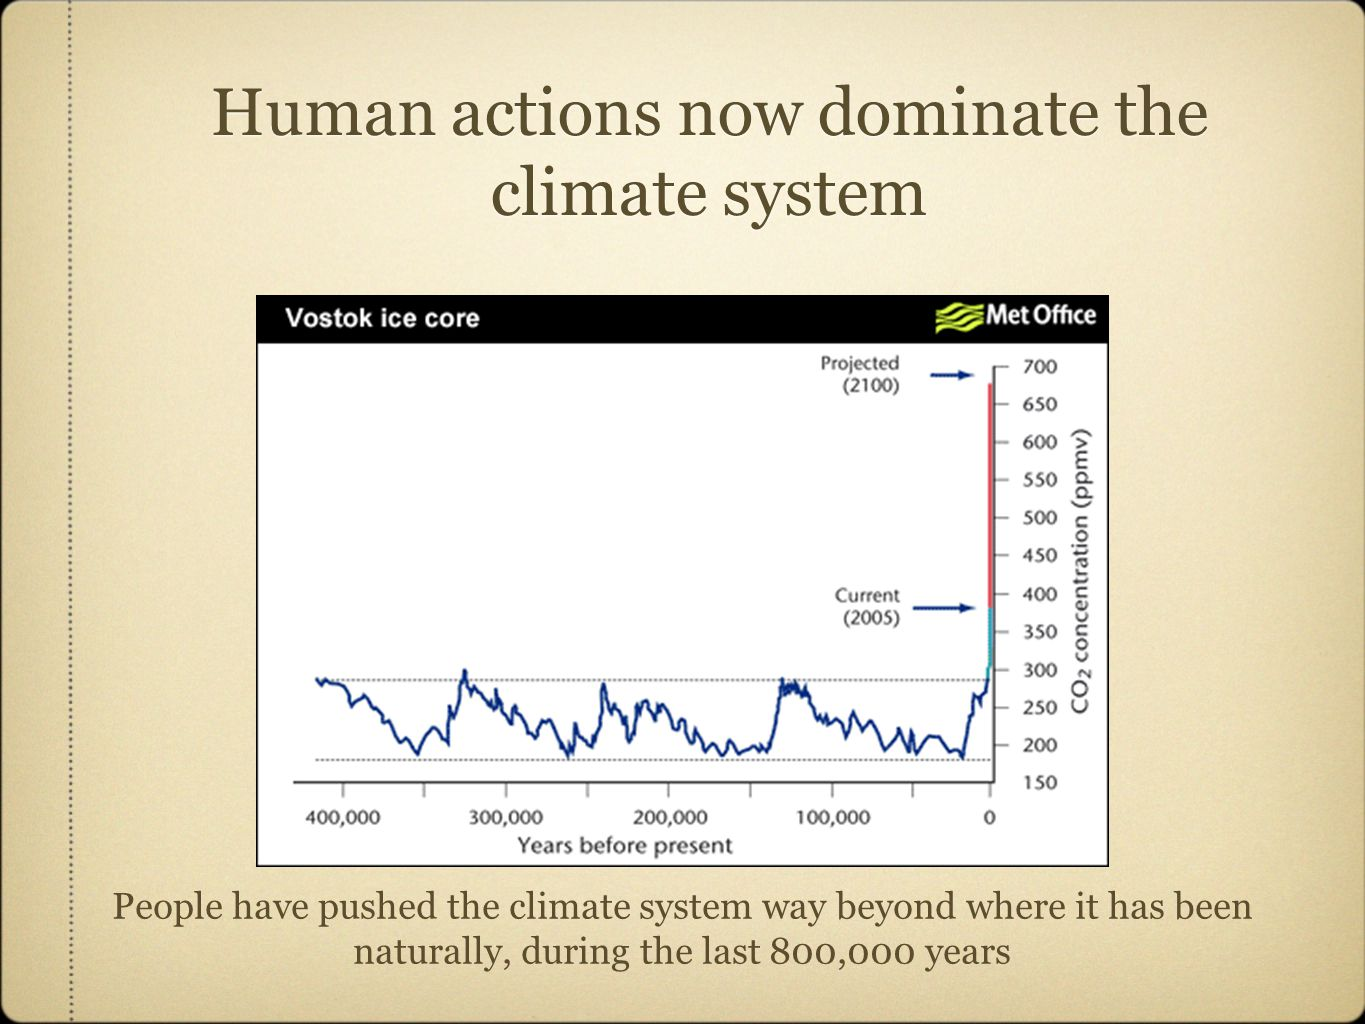 Human actions now dominate the climate system People have pushed the climate system way beyond where it has been naturally, during the last 800,000 years